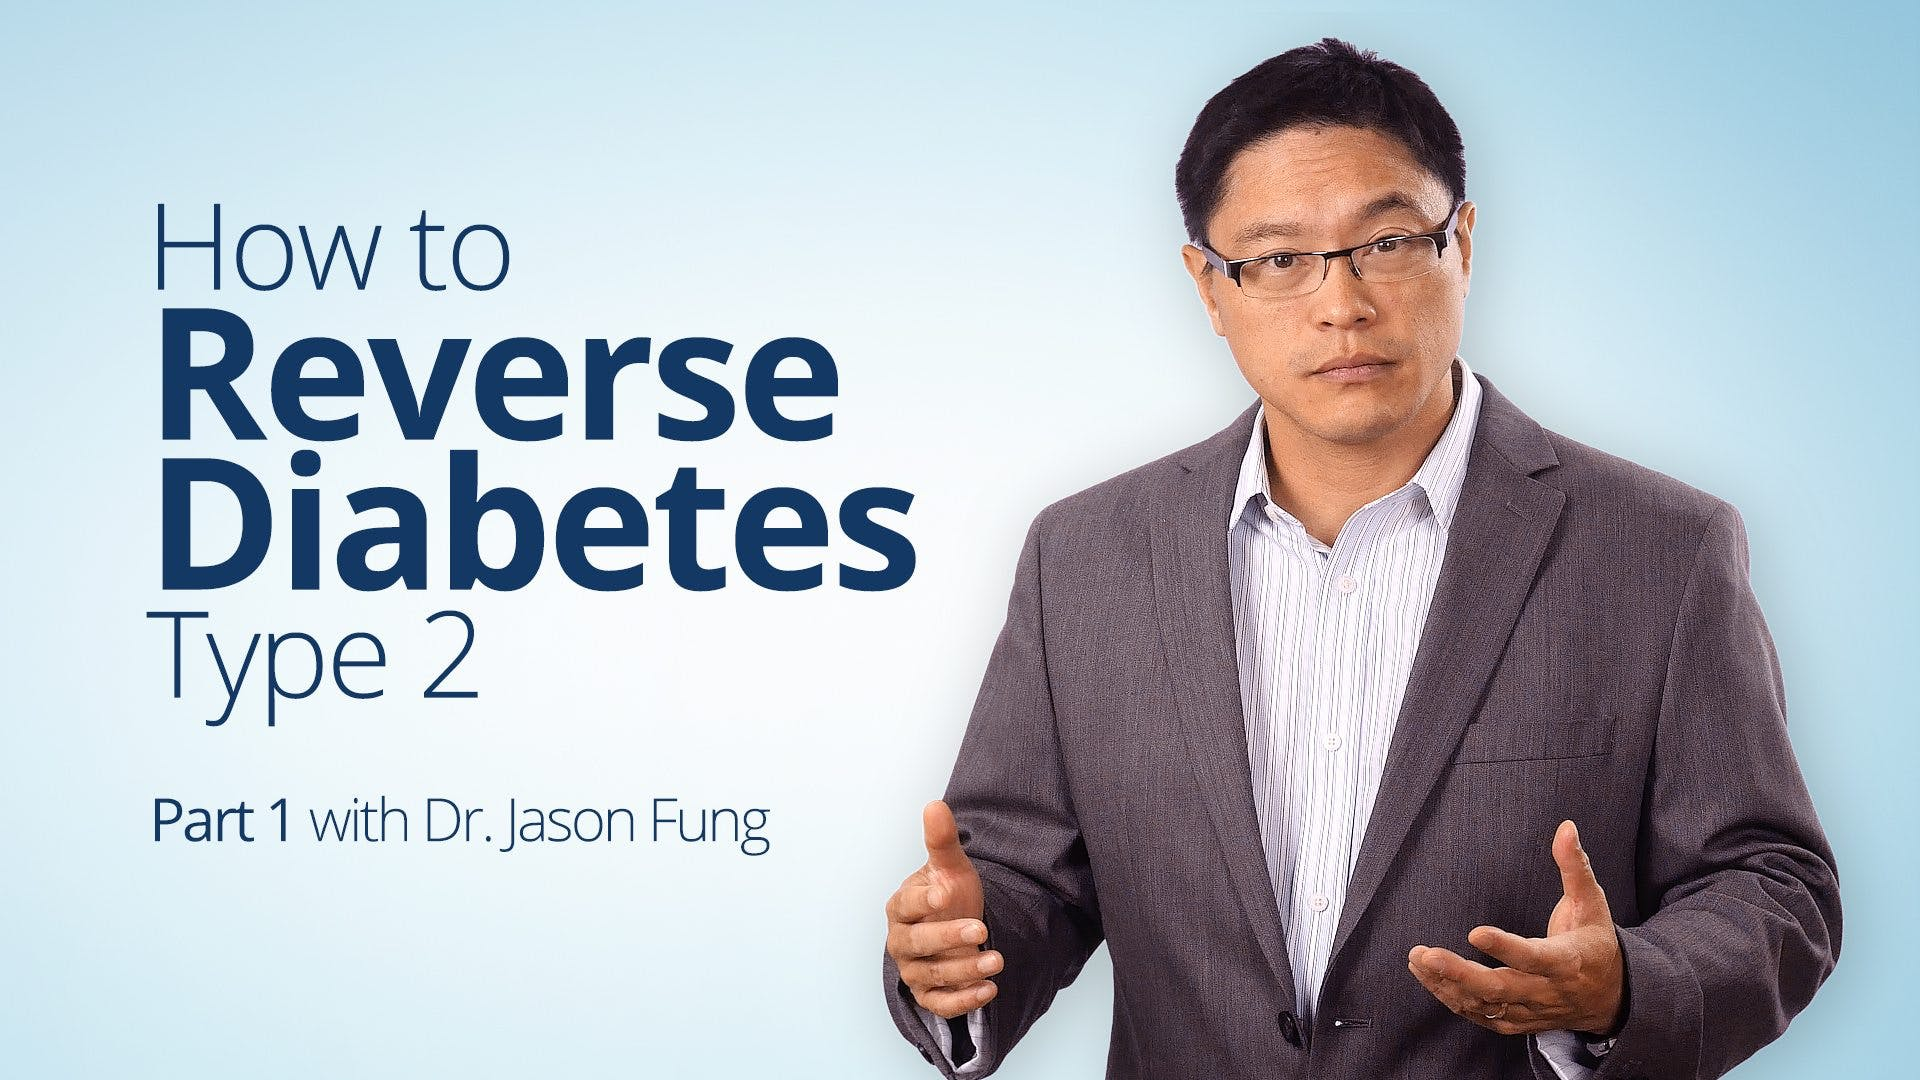 How to Reverse Diabetes Type 2 – Dr. Jason Fung